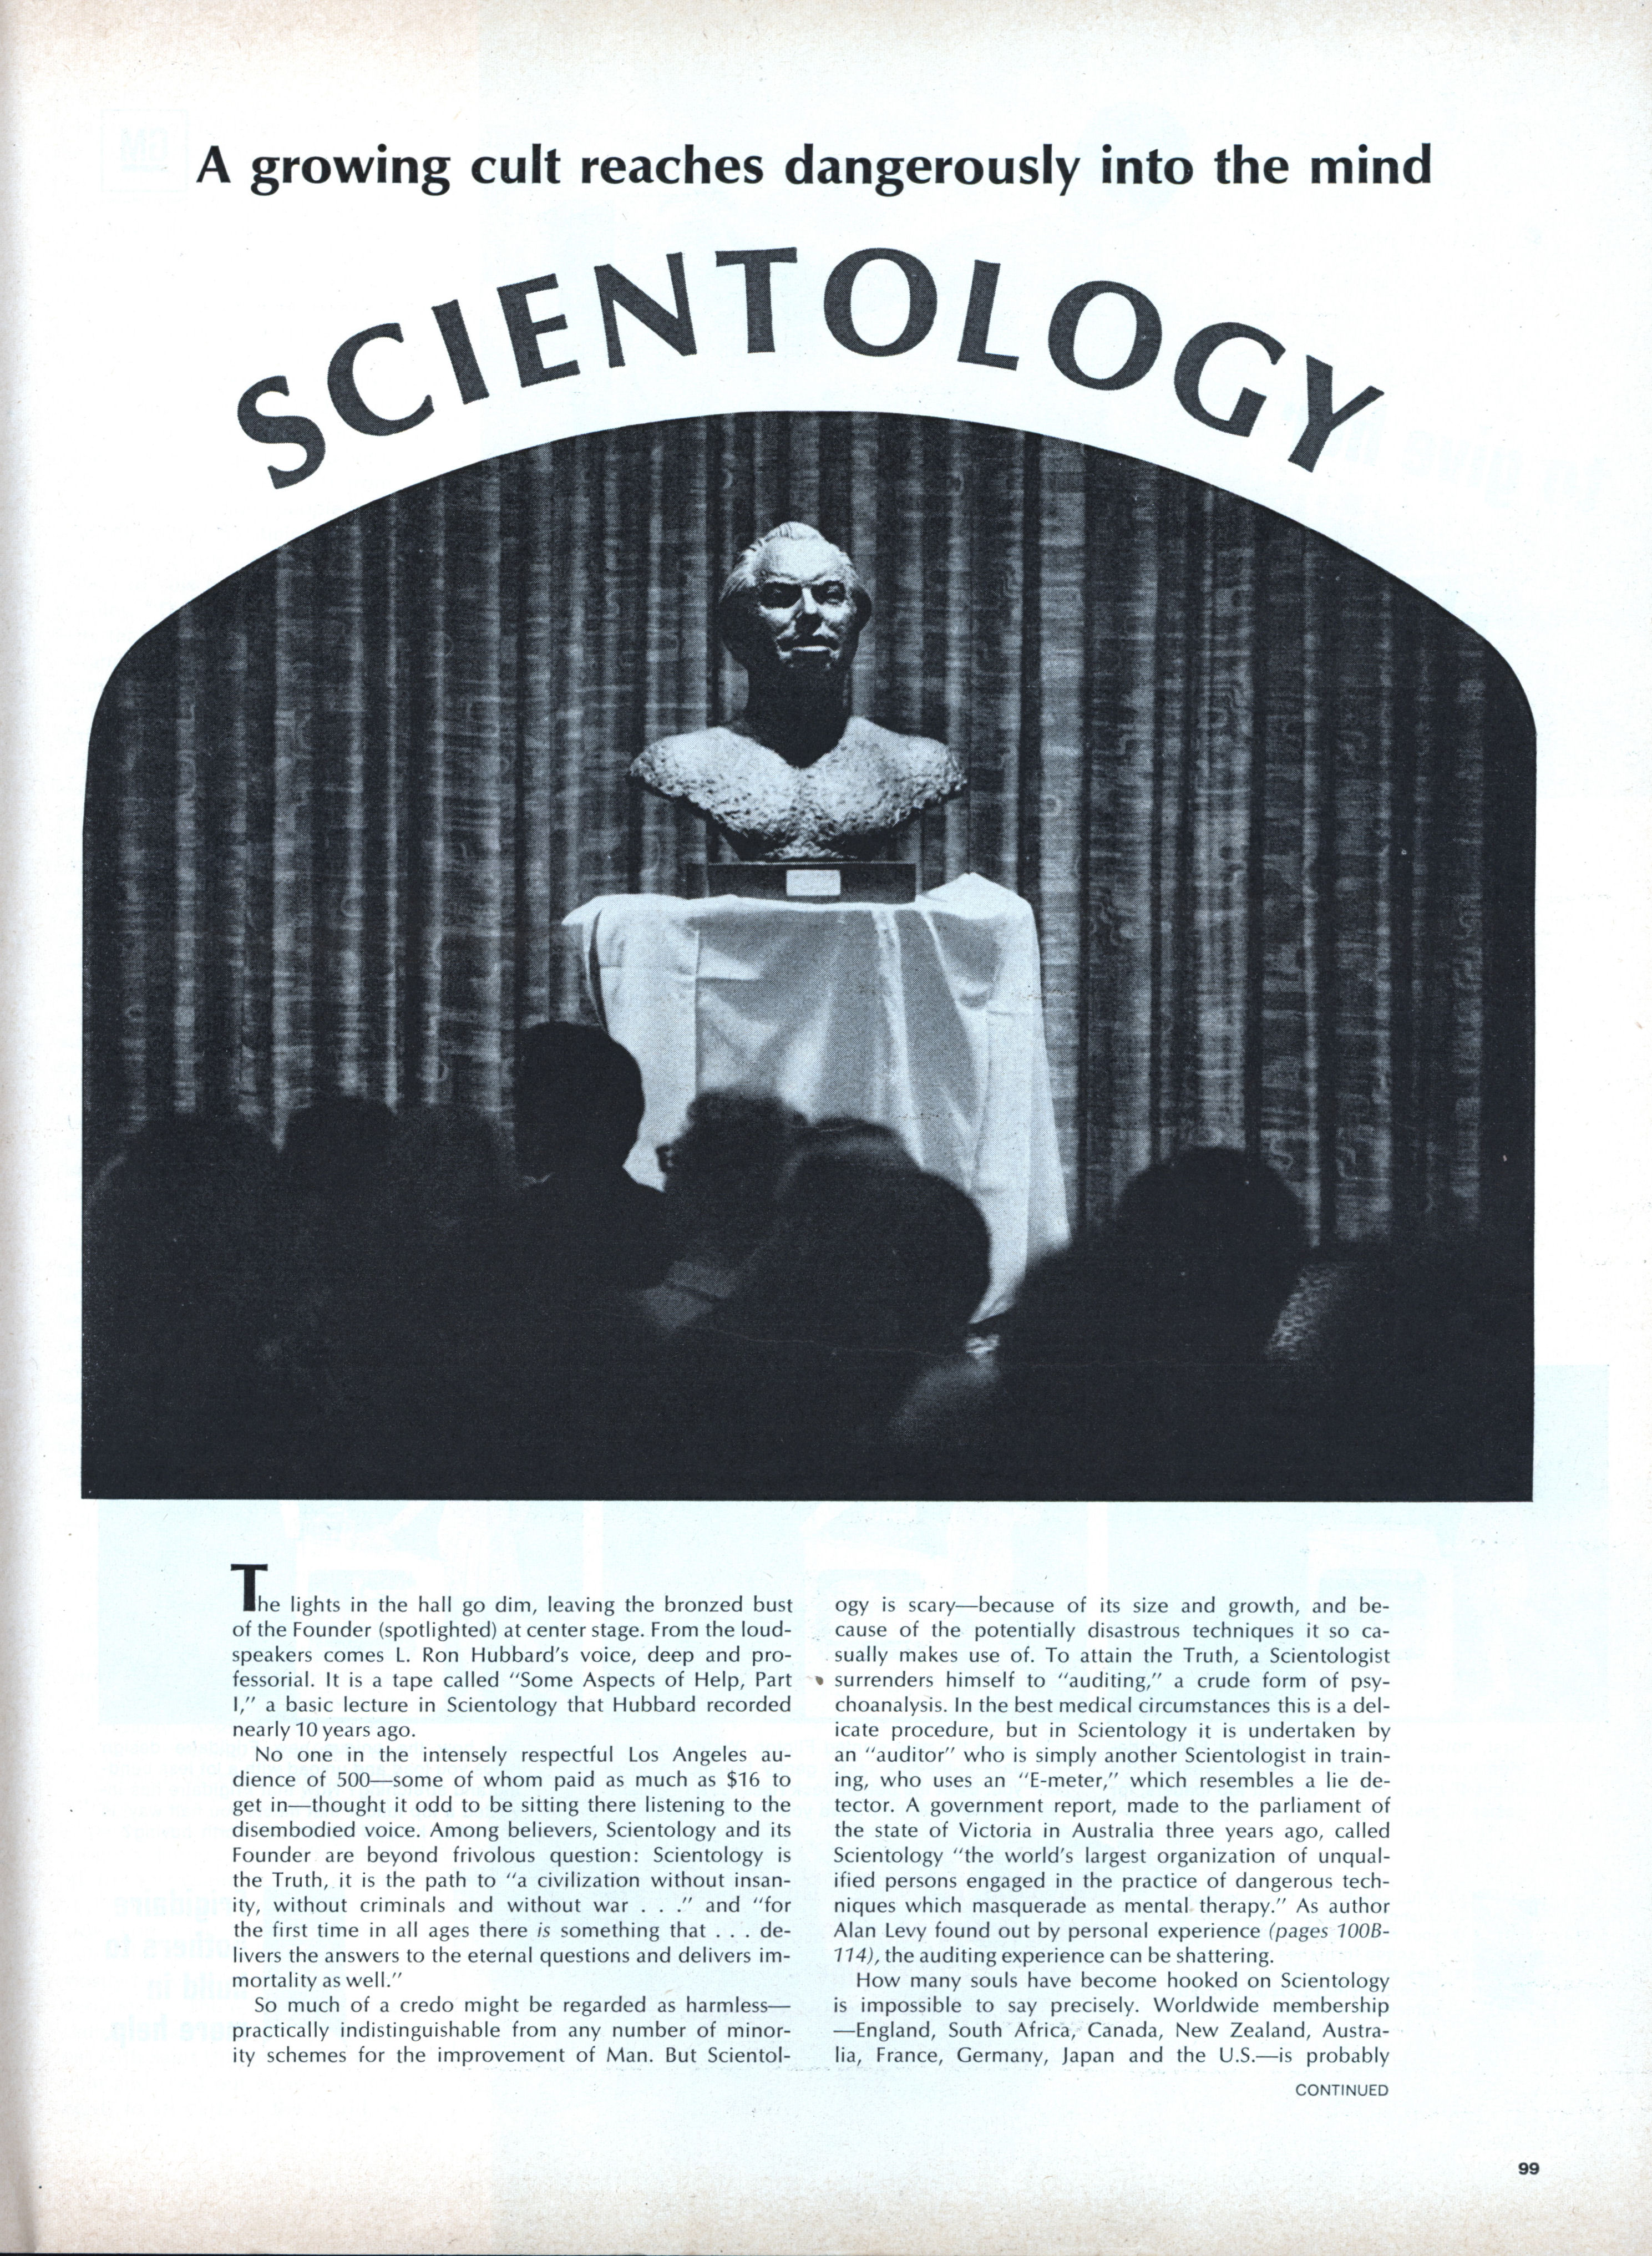 http://blog.modernmechanix.com/mags/Life/11-1968/scientology/scientology_00.jpg